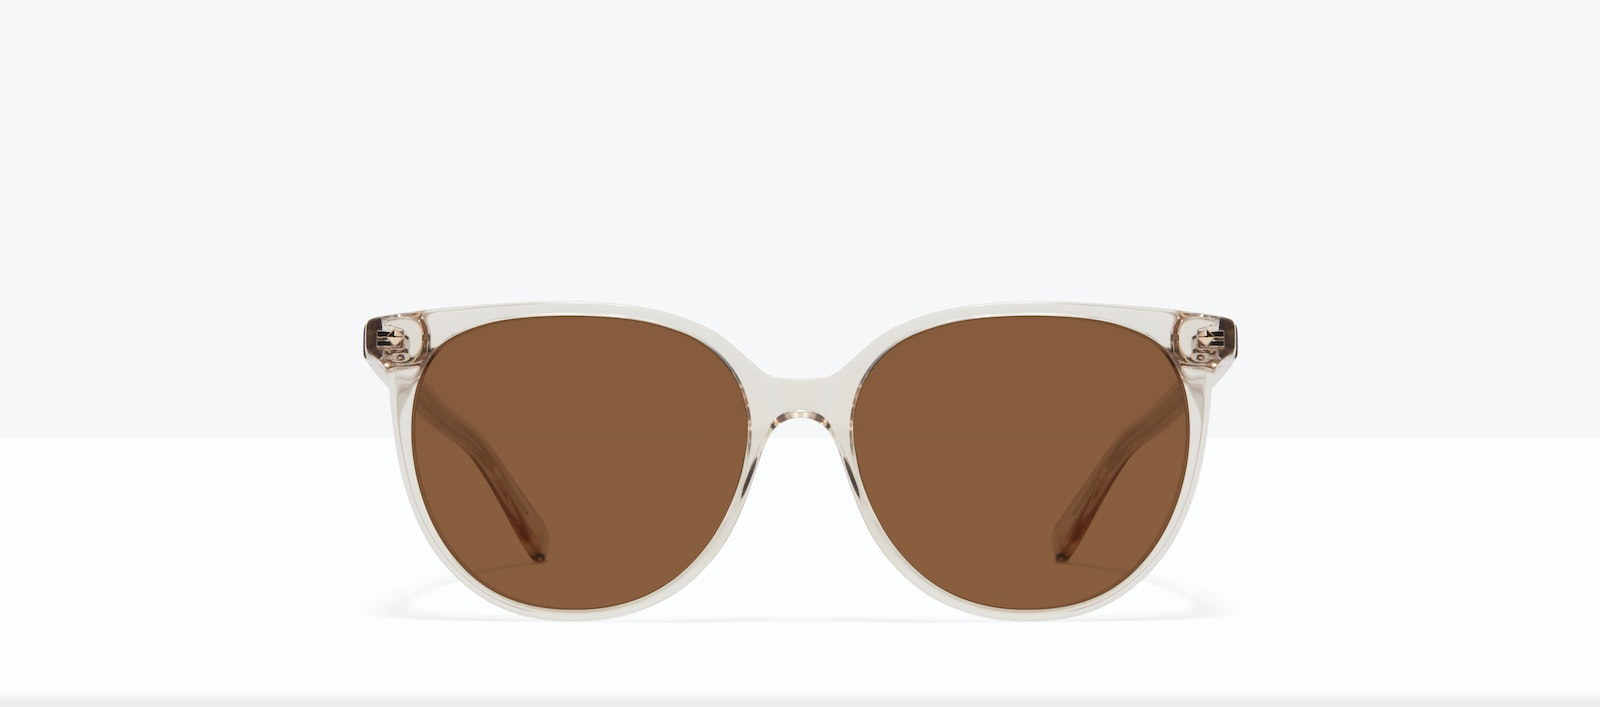 Affordable Fashion Glasses Round Sunglasses Women Area S Blond Front